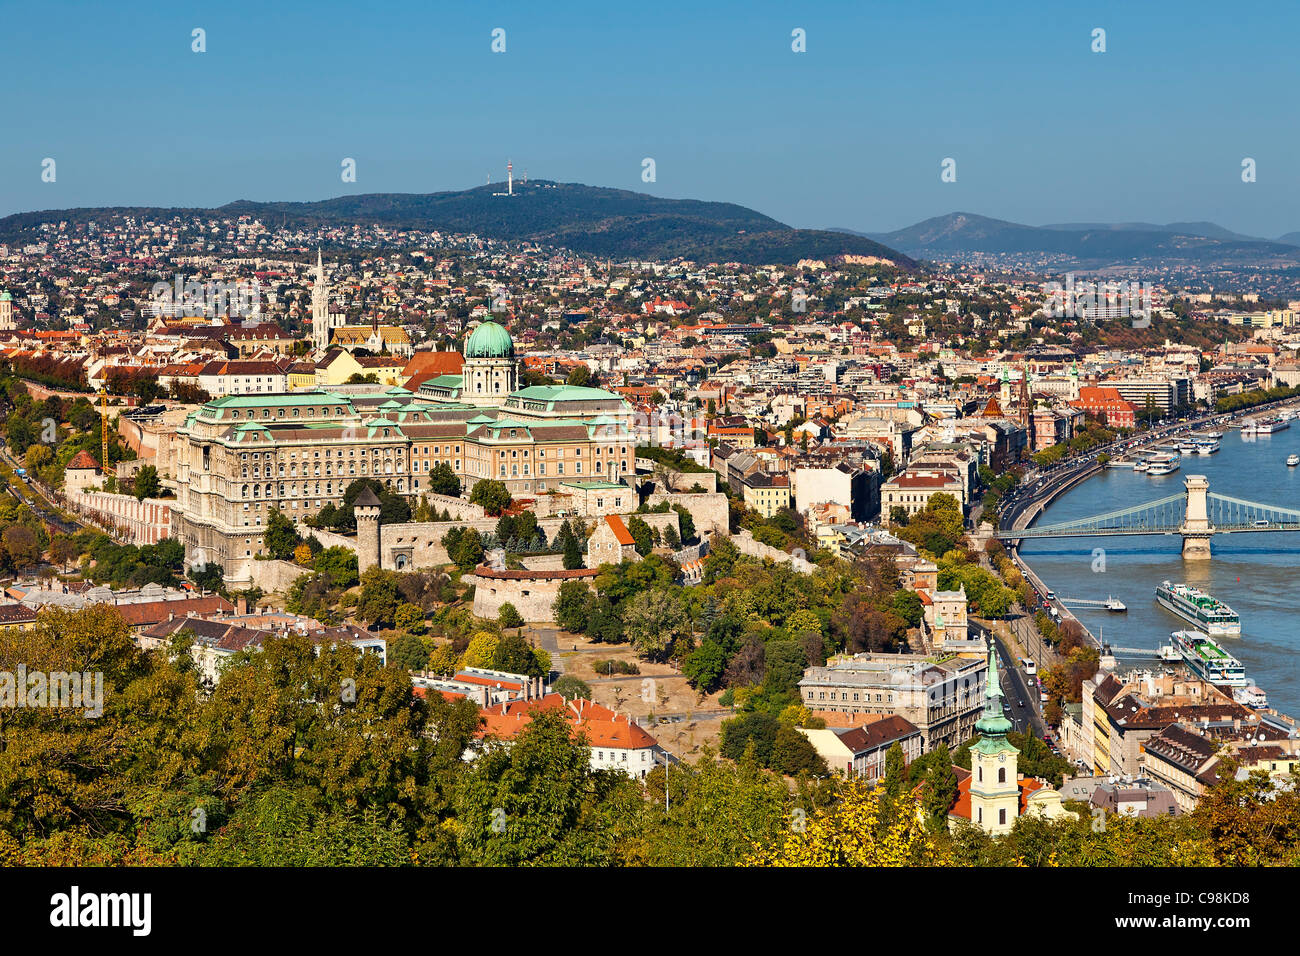 Budapest, Royal Palace and Matthias Church, View from Gellert Hill - Stock Image